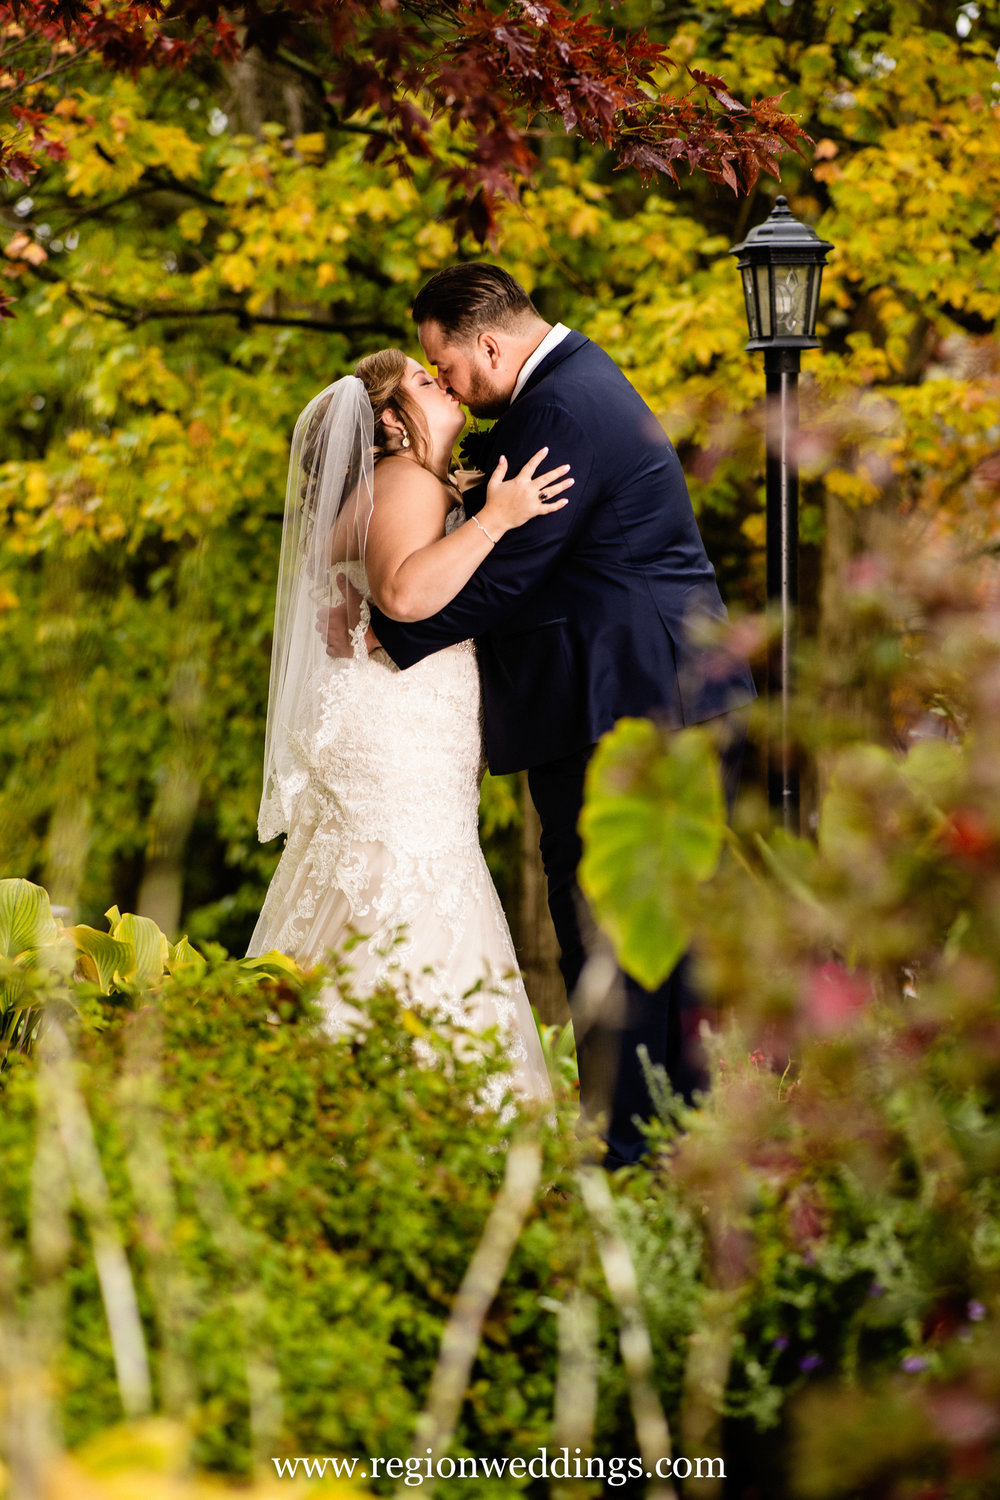 The bride and groom share a kiss surrounded by Fall color at The Inn At Aberdeen.